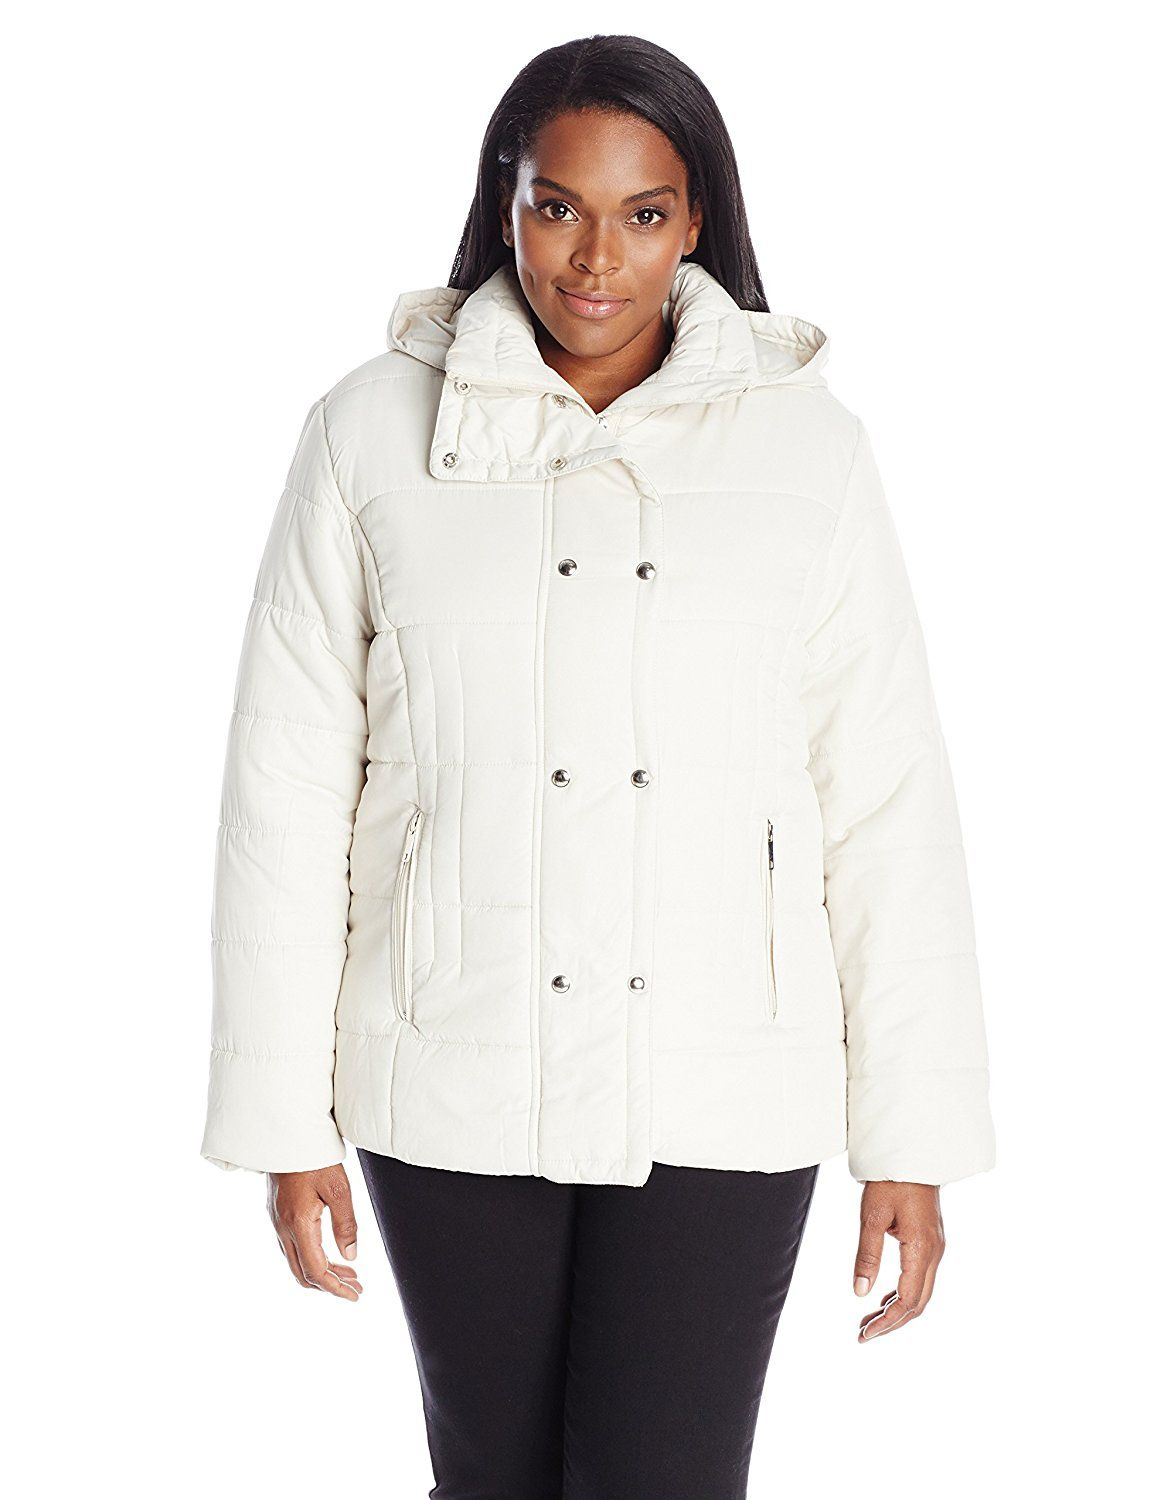 Big Chill Women S Plus Size Short Puffer Jacket Check This Awesome Image Plus Size Coats Women S Plus Size Shorts Short Puffer Jacket Plus Size Shorts [ 1500 x 1154 Pixel ]